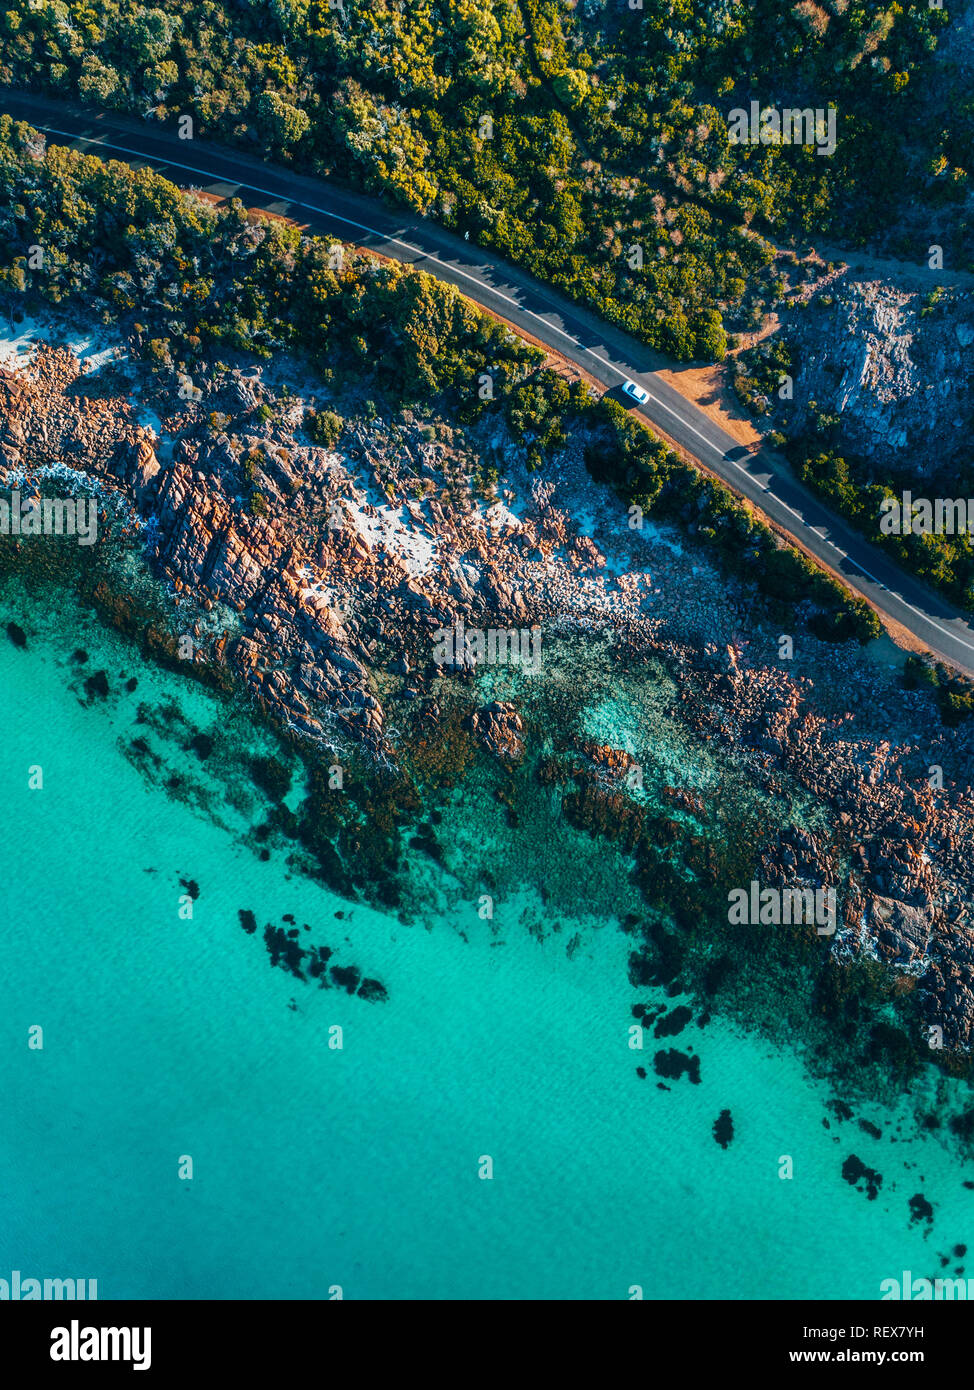 Point Piquet, Western Australia - Stock Image